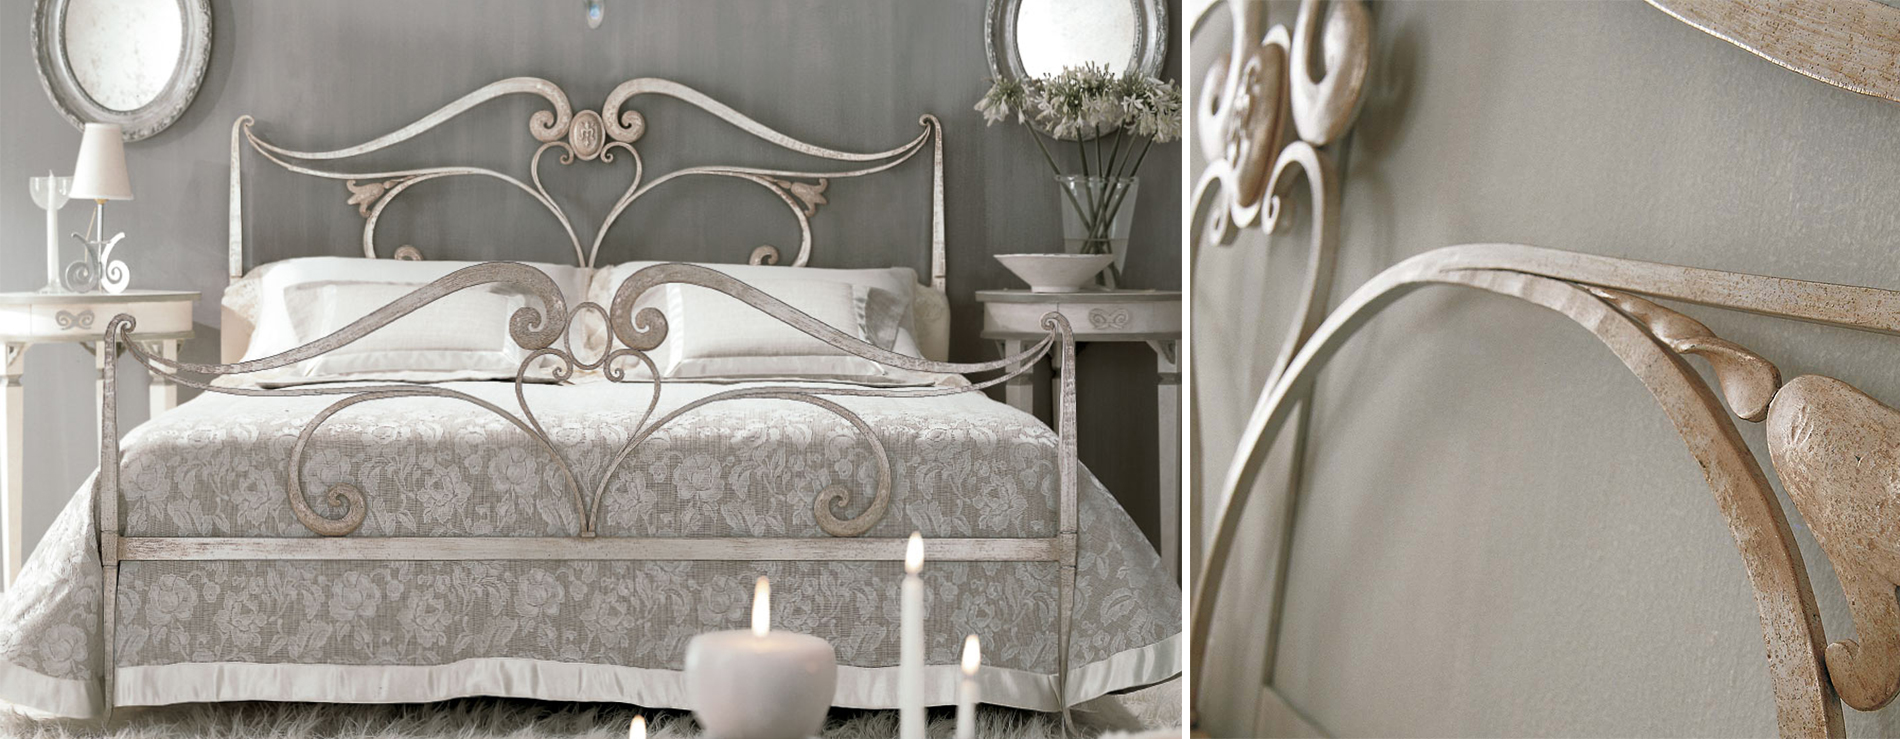 Letto Ducale